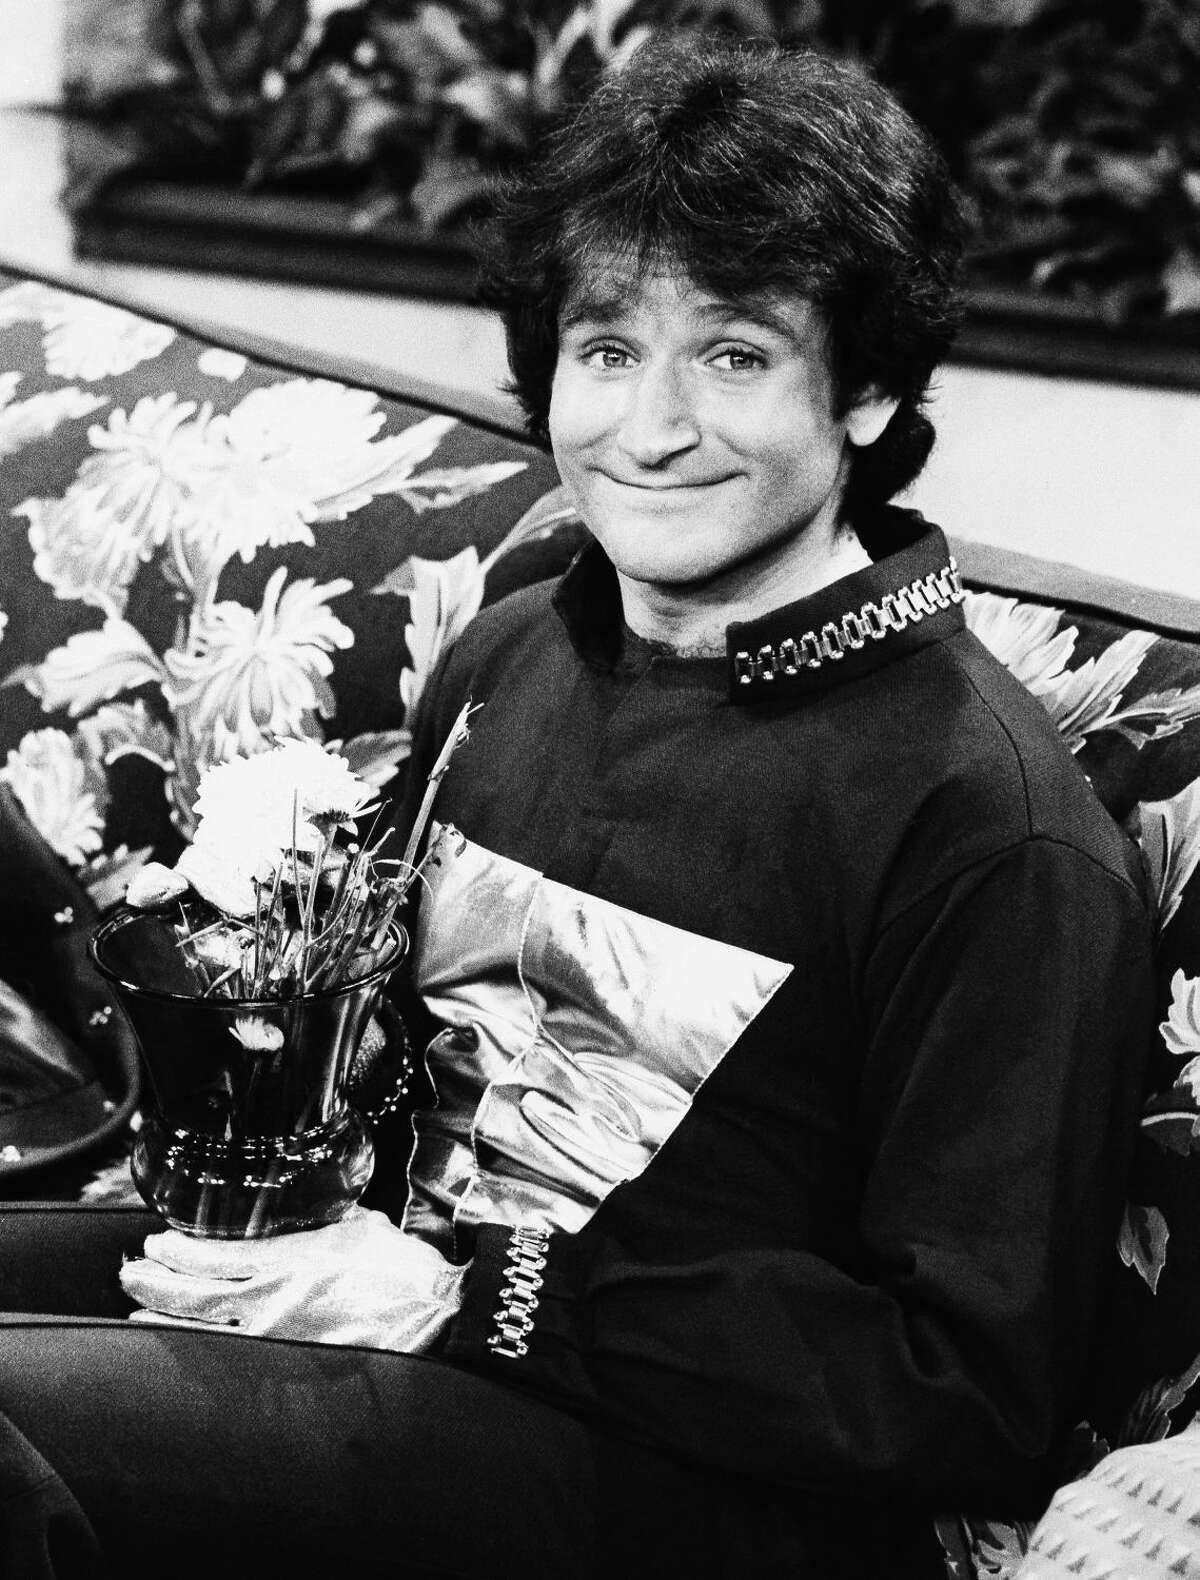 """FILE - This 1978 file photo originally released by ABC shows actor Robin Williams on the set of ABCs """"Mork and Mindy."""" Williams, whose free-form comedy and adept impressions dazzled audiences for decades, has died in an apparent suicide. He was 63. The Marin County Sheriff's Office said Williams was pronounced dead at his home in California on Monday, Aug. 11, 2014. The sheriff's office said a preliminary investigation showed the cause of death to be a suicide due to asphyxia. (AP Photo/ABC, File)"""